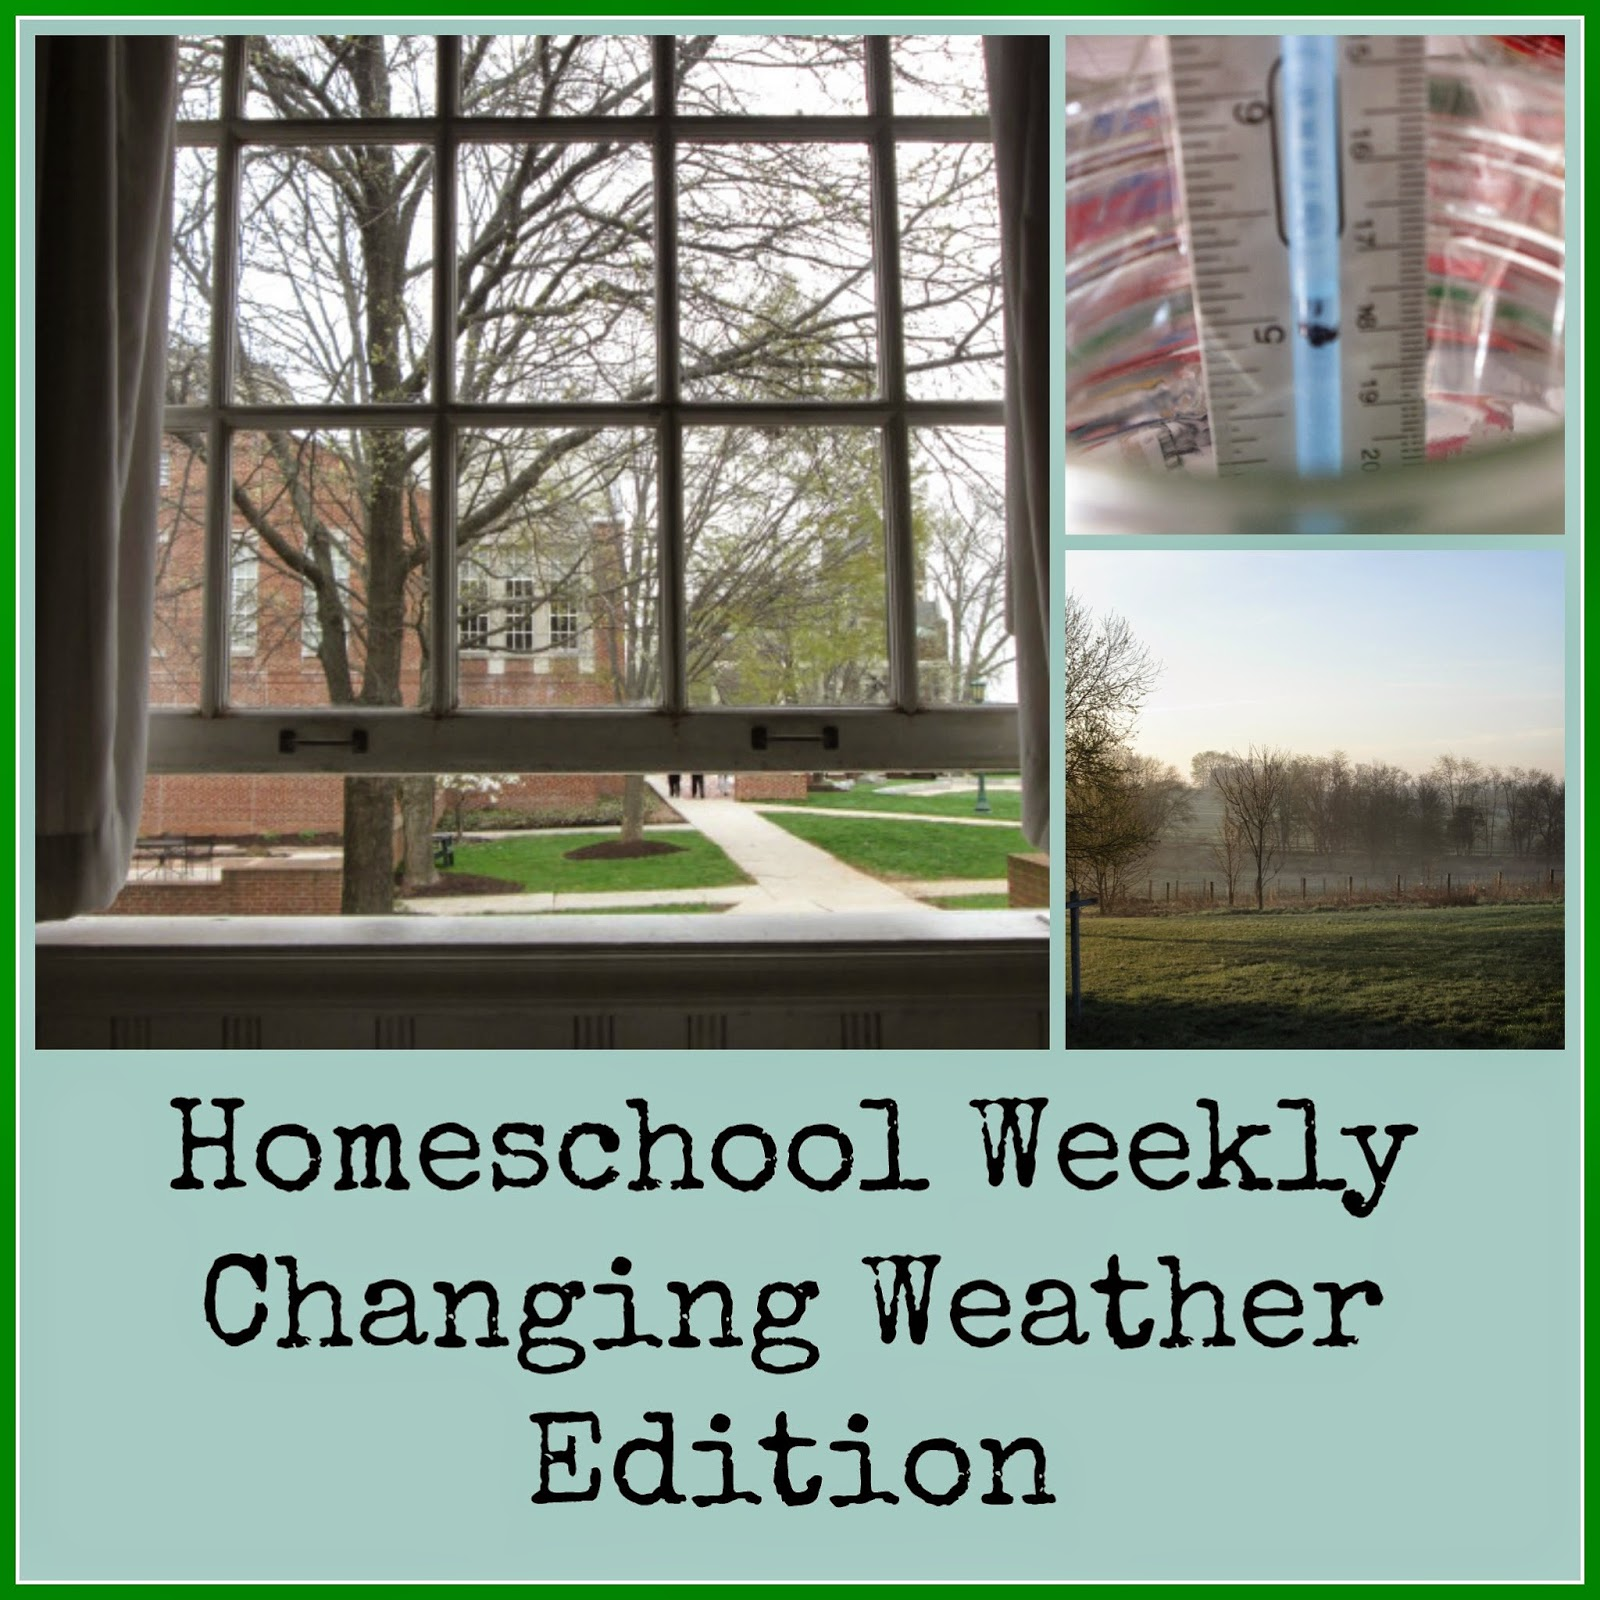 Homeschool Weekly: Changing Weather Edition at Homeschool Coffee Break - kympossibleblog.blogspot.com